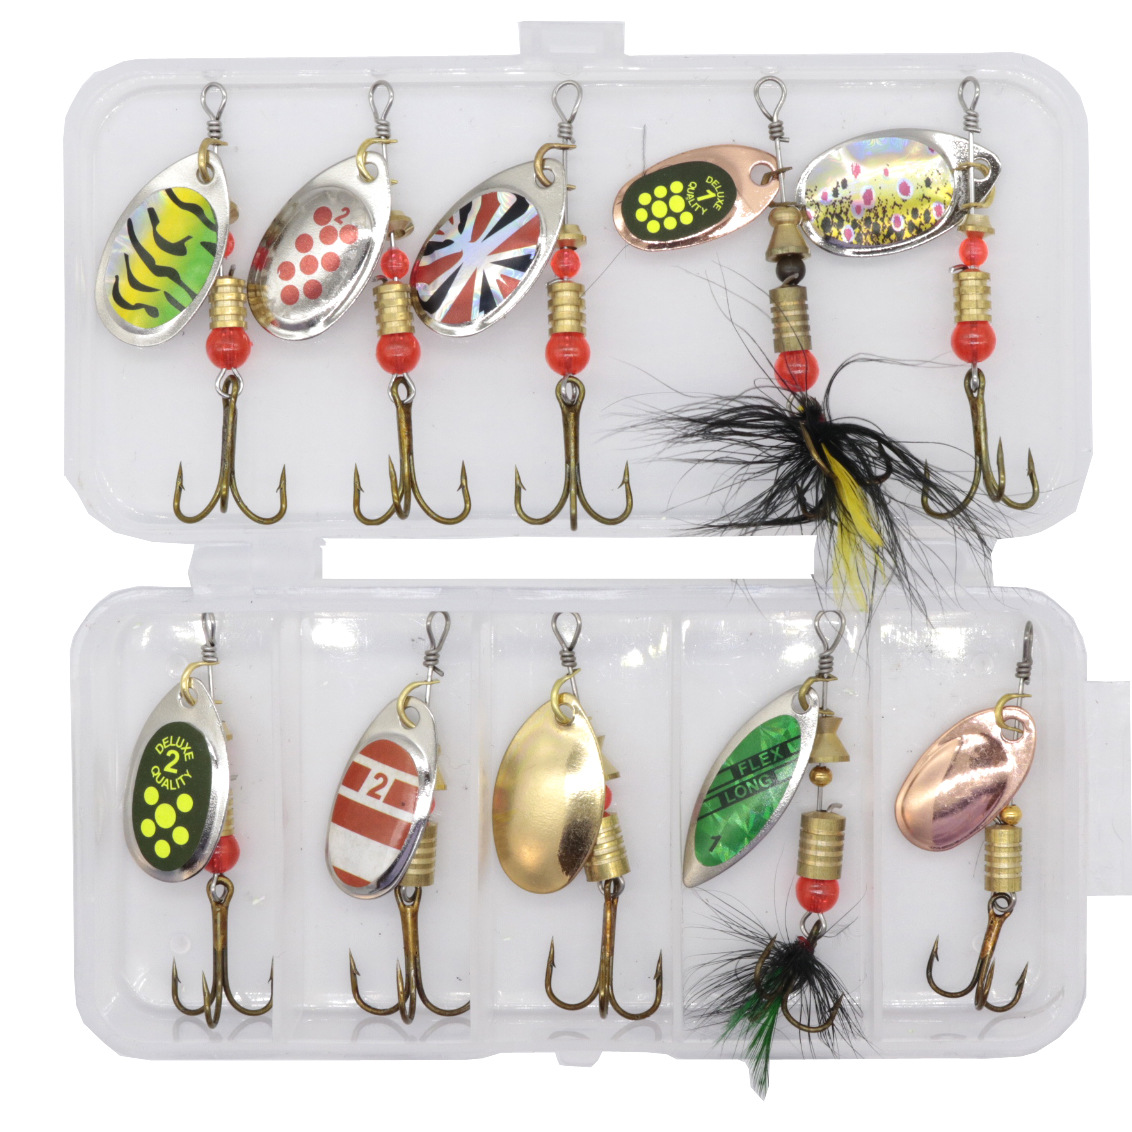 Metal Spoon Spinner Bait 2.5-4.4g  Feather Hooks Sequin Sea Fishing Lure Isca Artificial Paillette Wobbler Jig Metal Buzz Bait